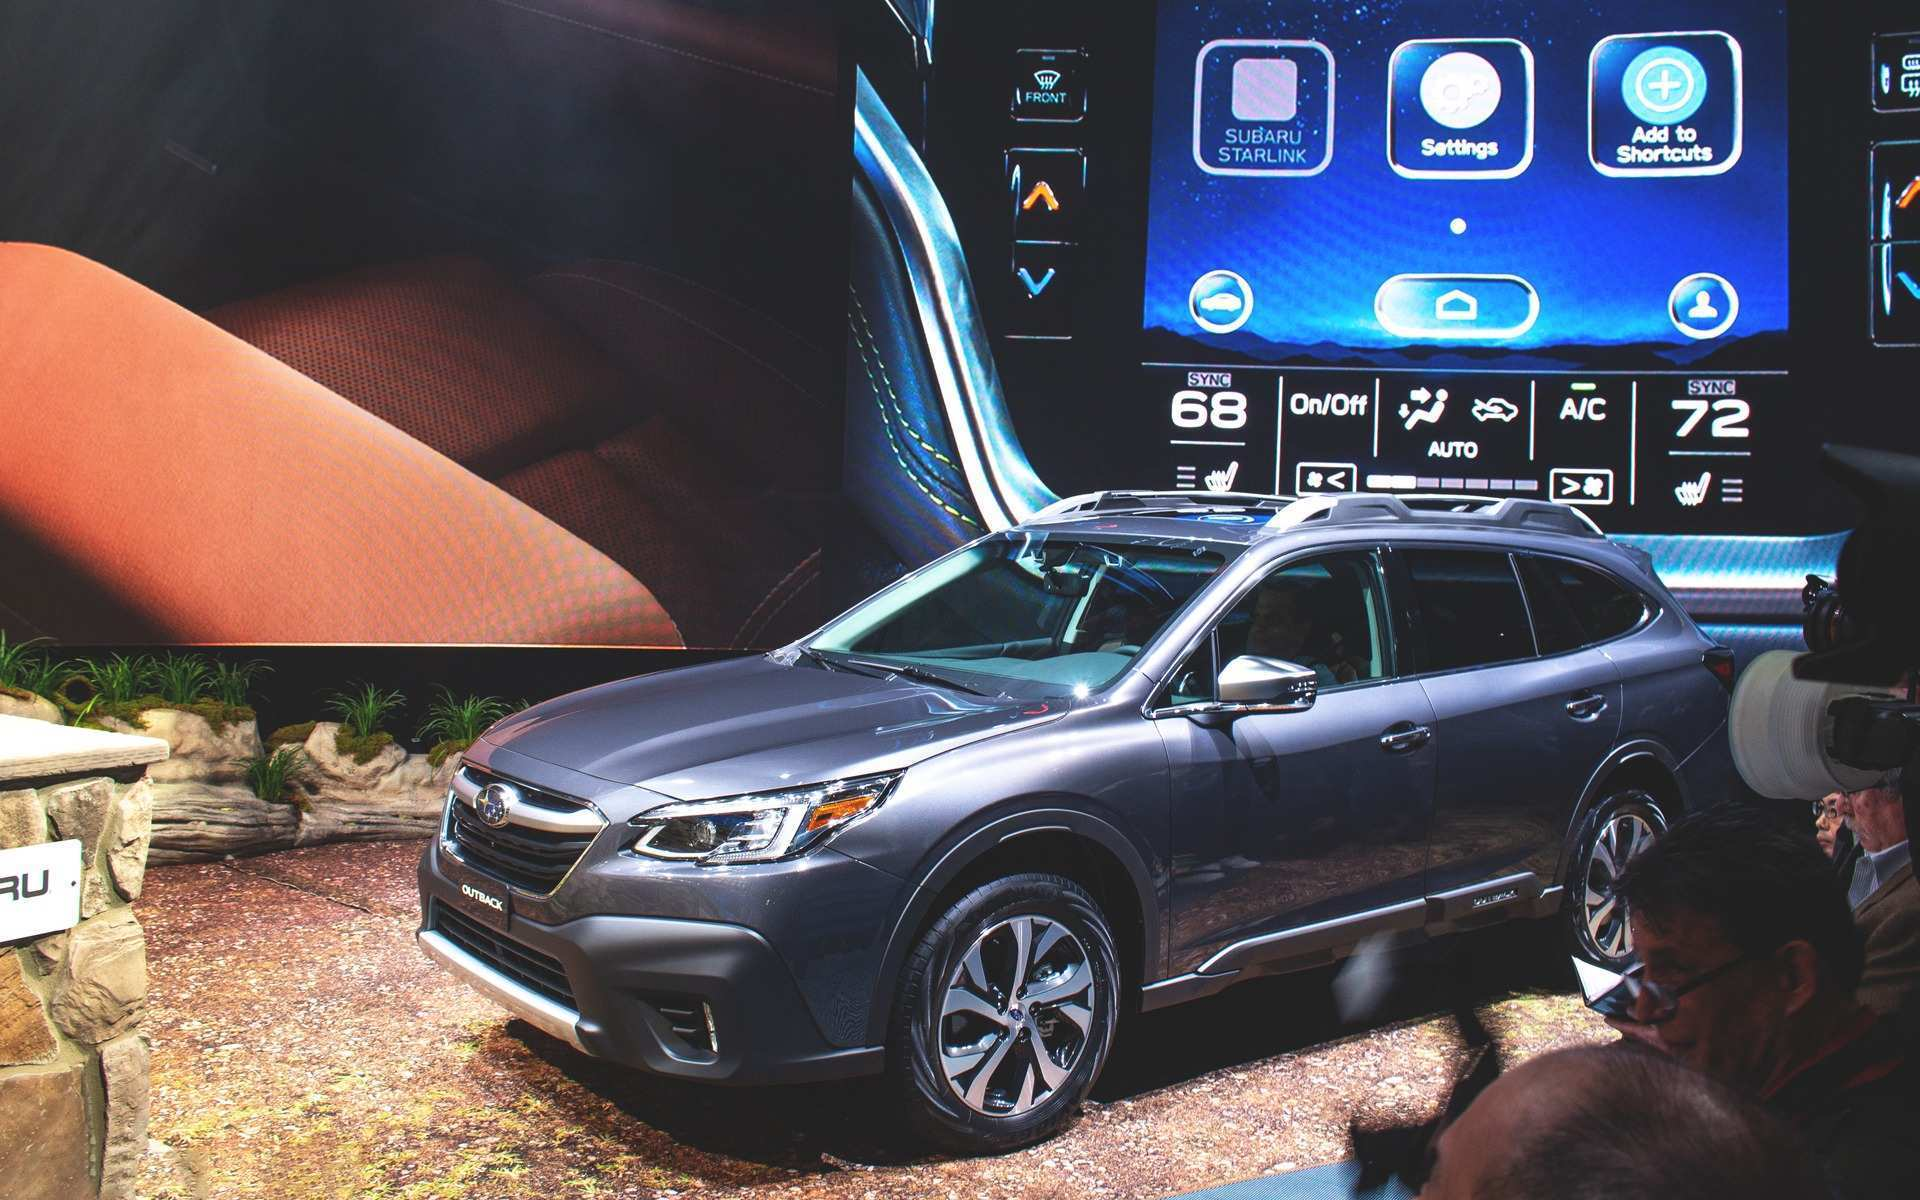 46 New Subaru Eyesight 2020 Exterior